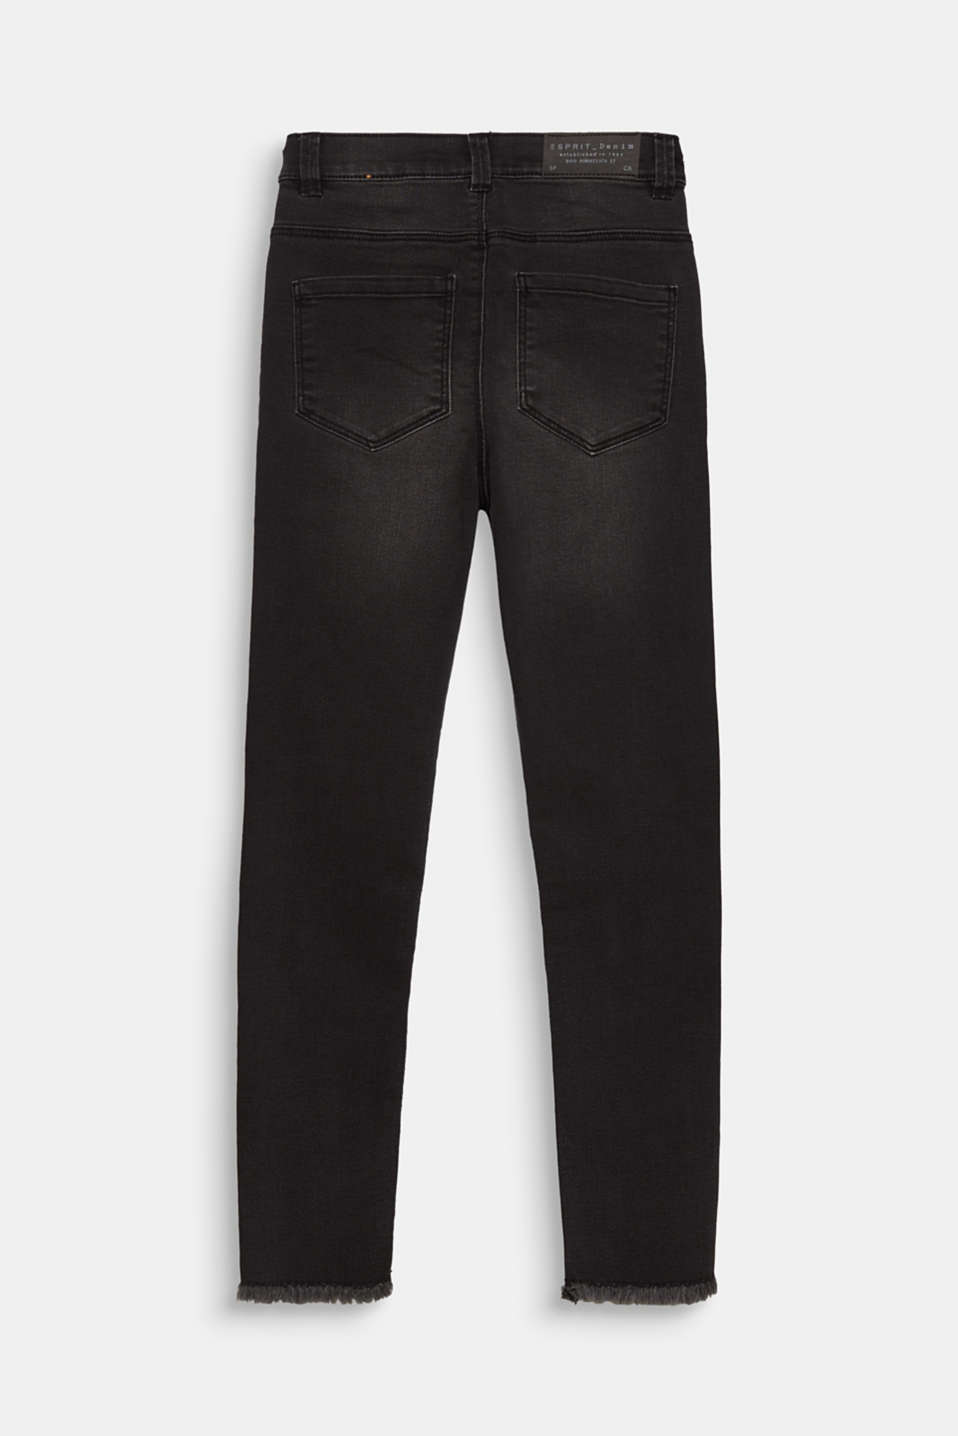 Jeans with a zip and frayed hem, adjustable waistband, LCBLACK DENIM, detail image number 1